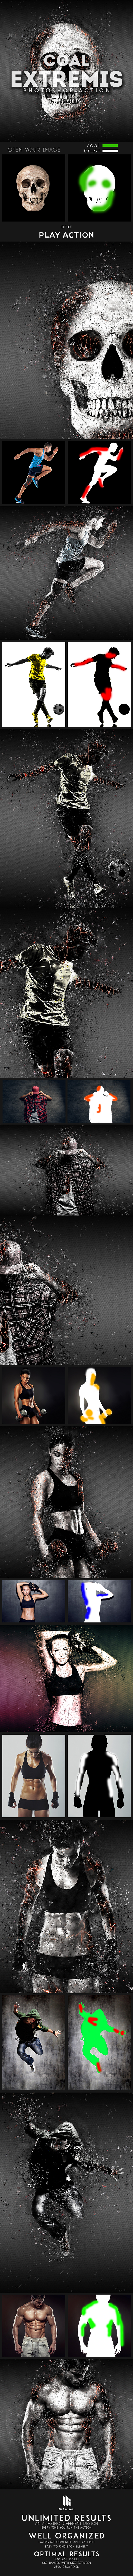 Coal Extremis Photoshop Action - Photo Effects Actions